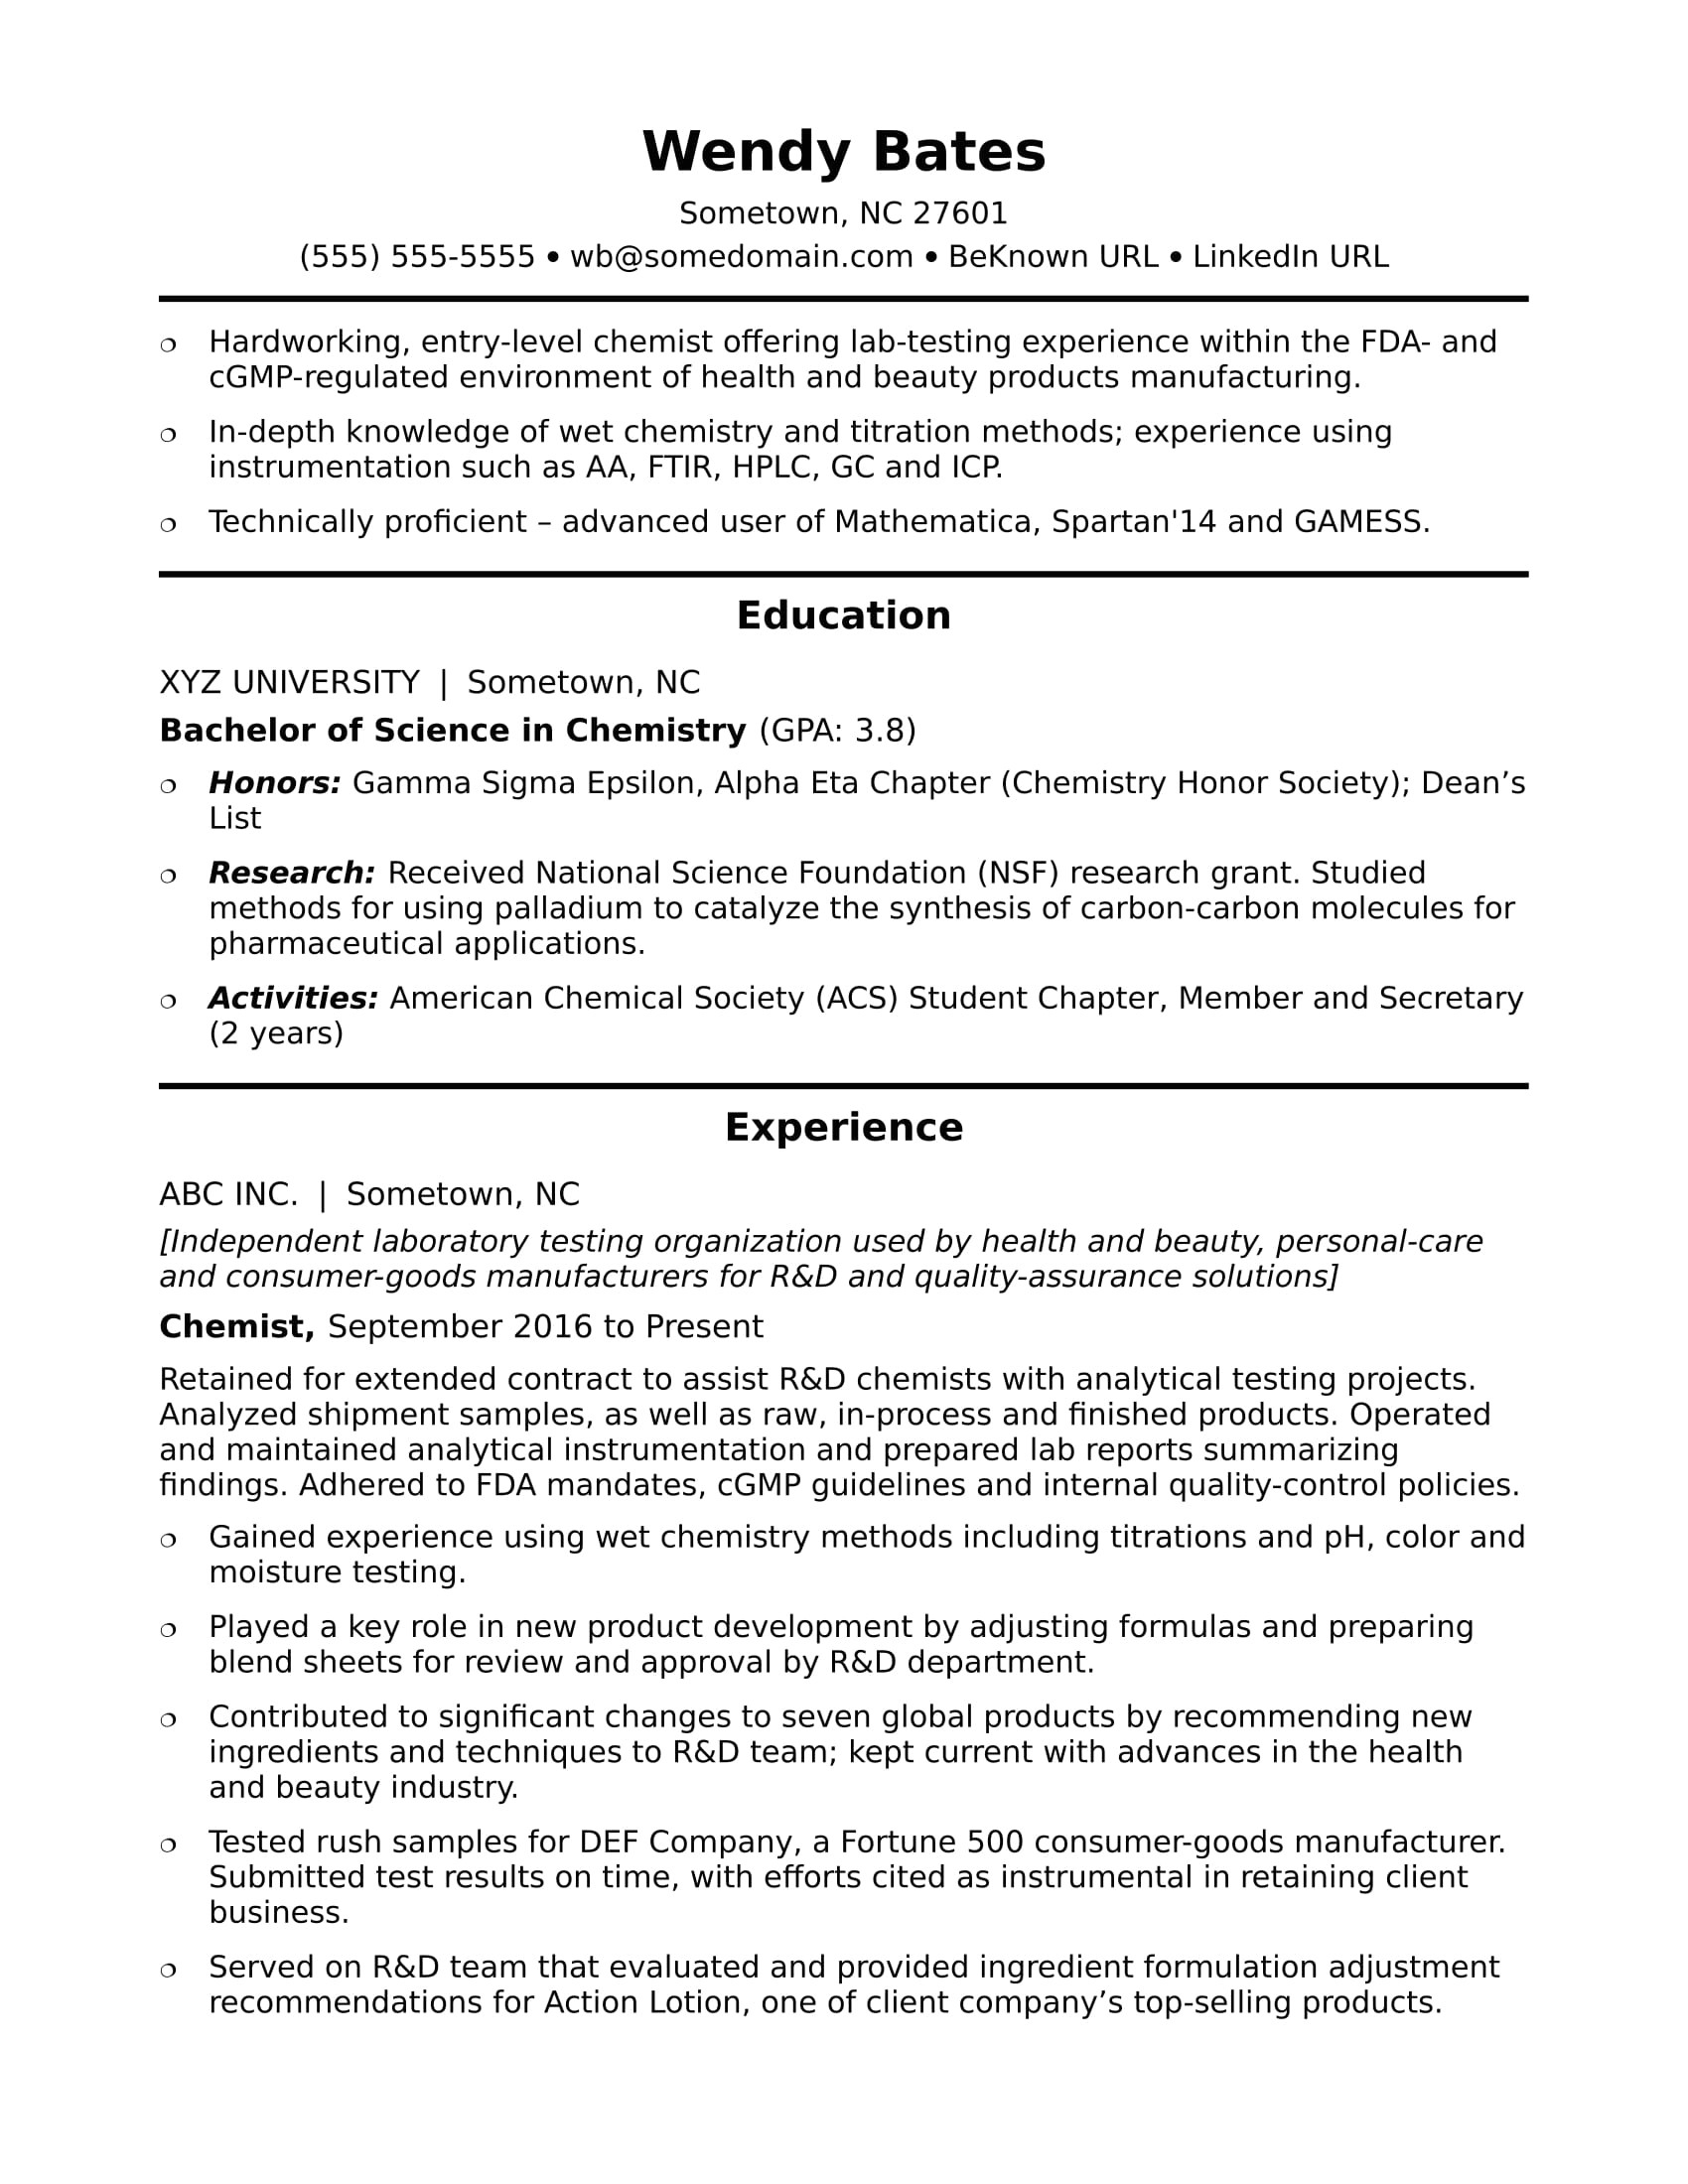 sample resume chemist entry level